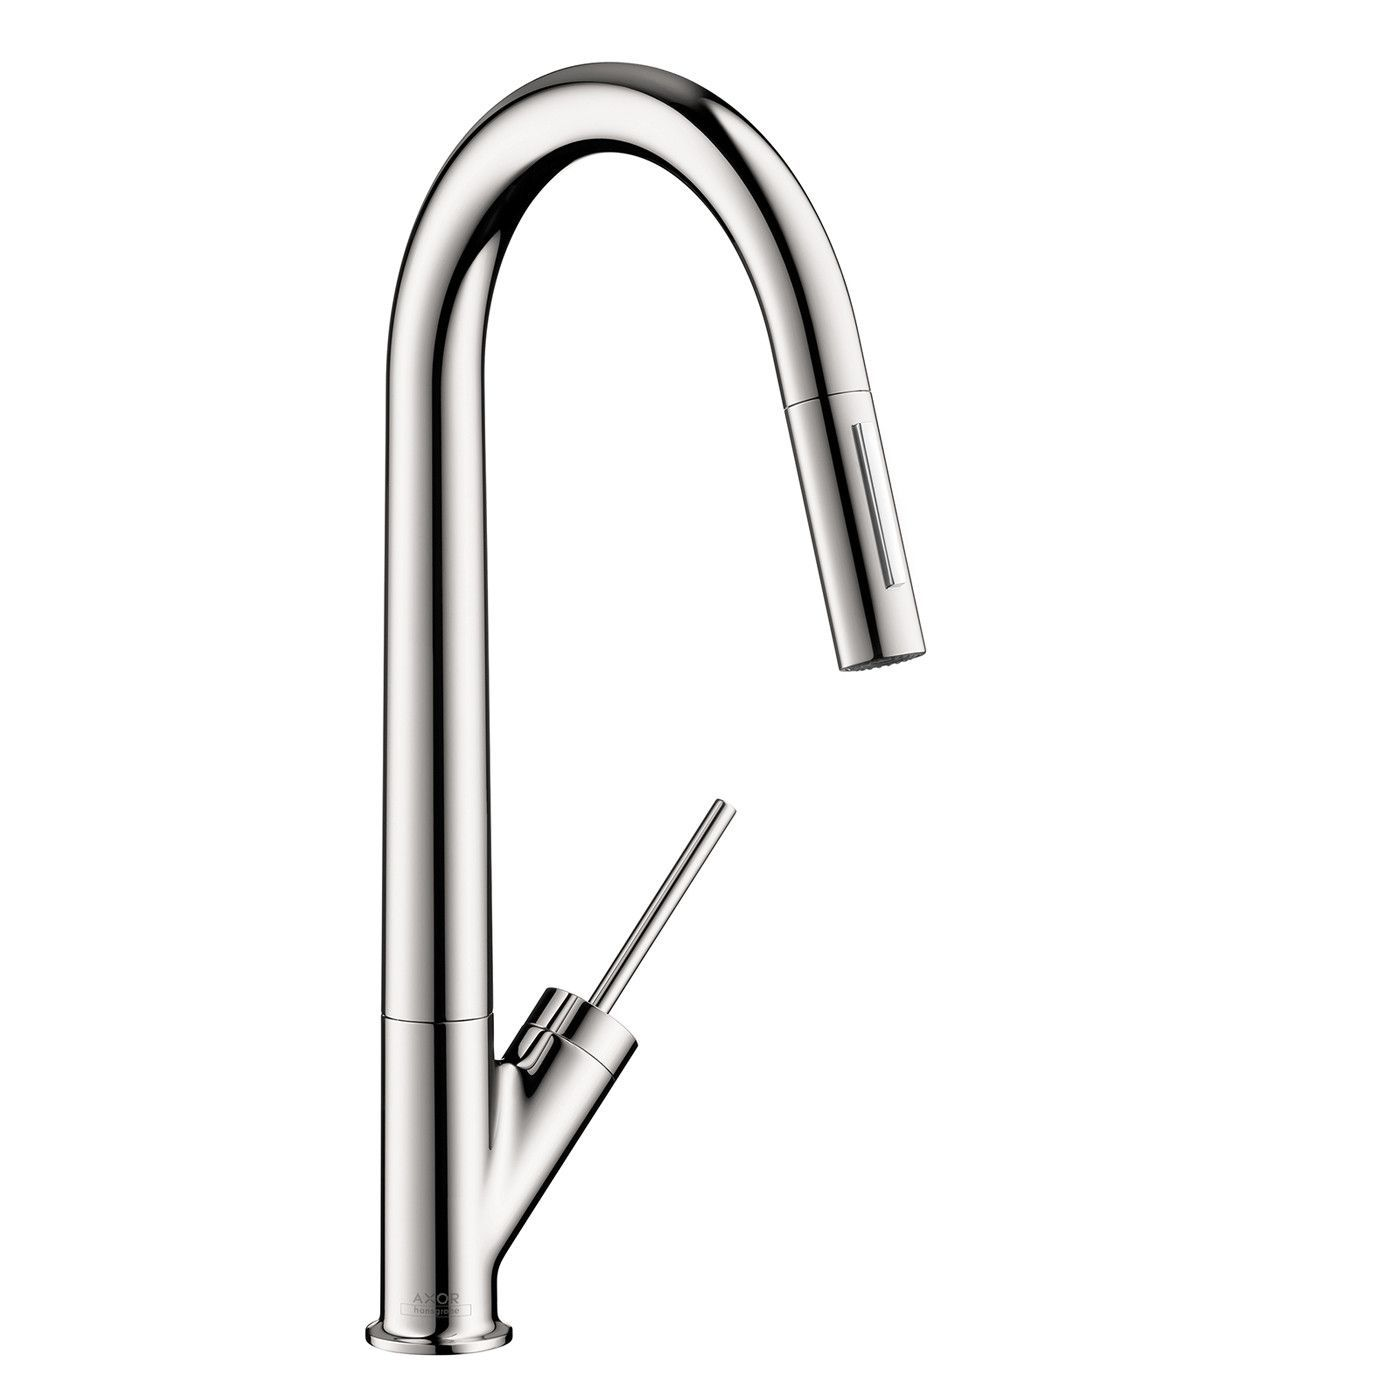 Hansgrohe 10821001 Chrome Axor Starck Pull-Down Kitchen Faucet with ...